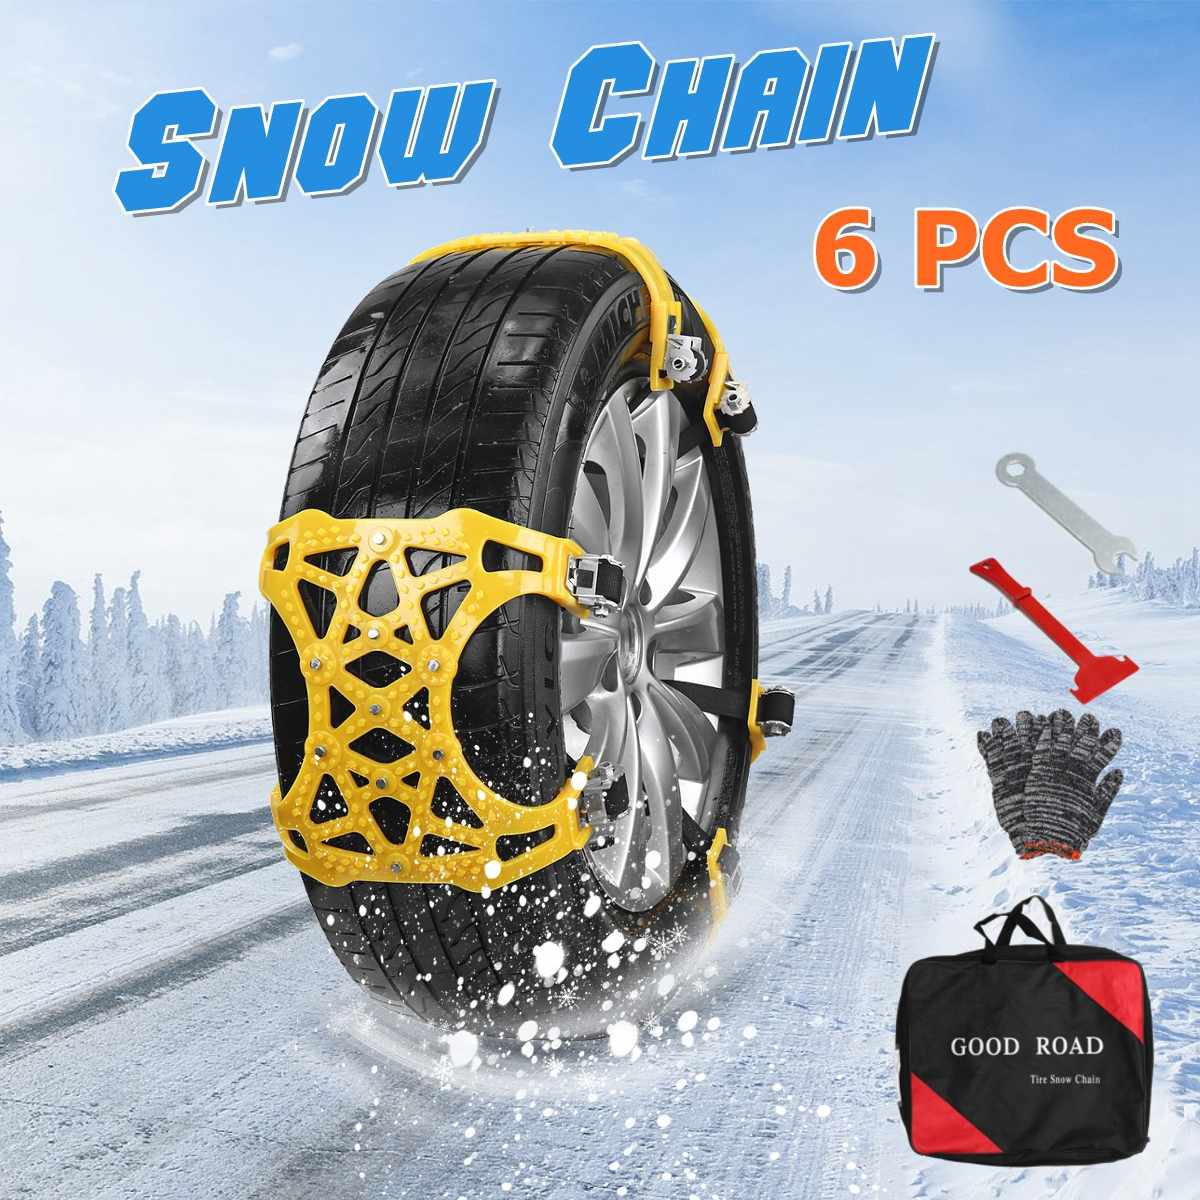 Automobiles & Motorcycles 3x Tpu Plastic Snow Chains Spikes For Tires Universal Car Tyre Winter Roadway Safety Chains Snow Climbing Mud Ground Anti Slip Comfortable Feel